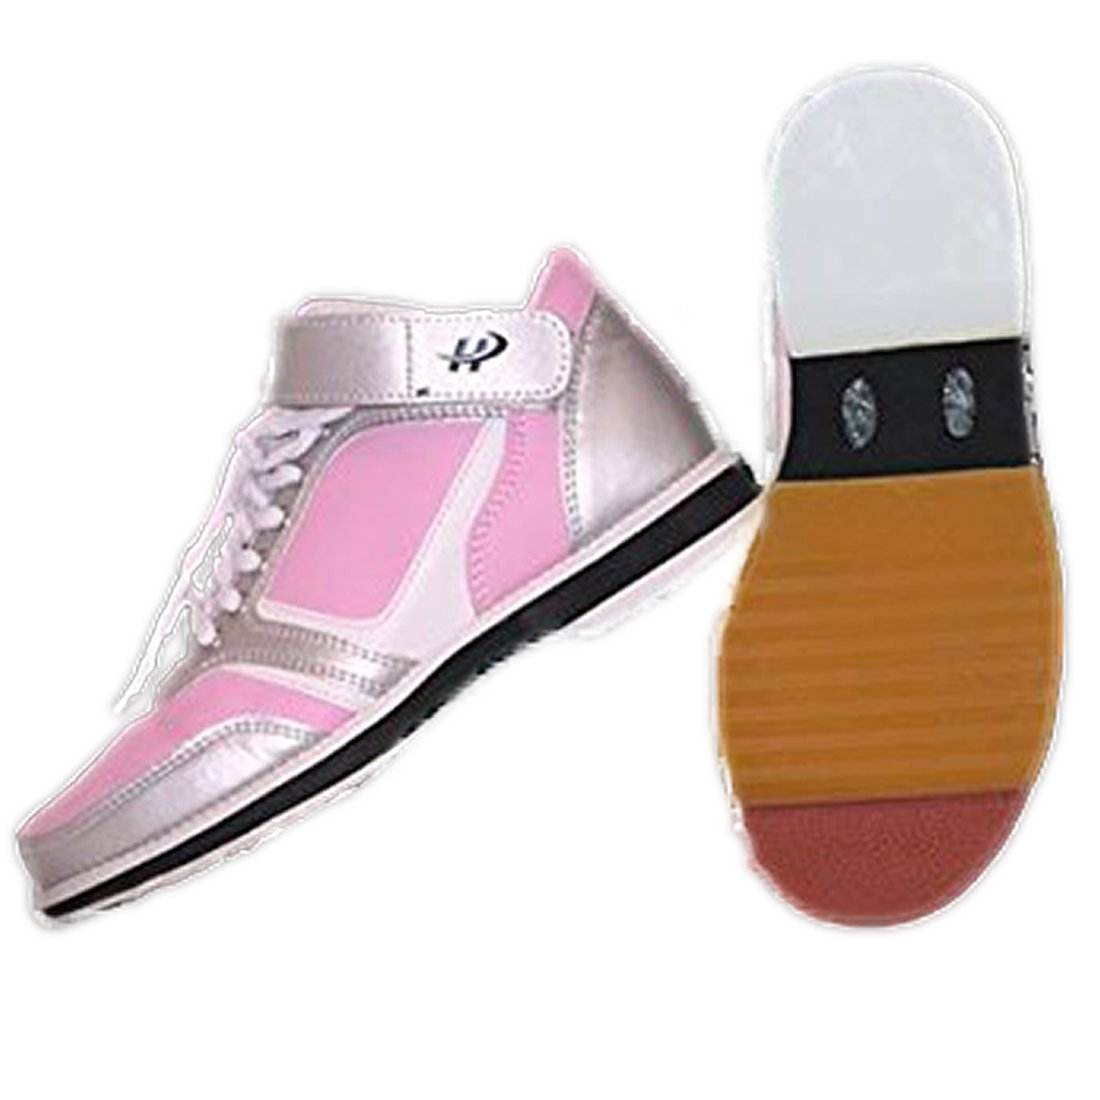 Women's High Top Bowling Shoe For Right Handed Bowler, Rubber Bottom, Foam Padded Tounge & Collar, unique style - Pink and Silver | Size 8